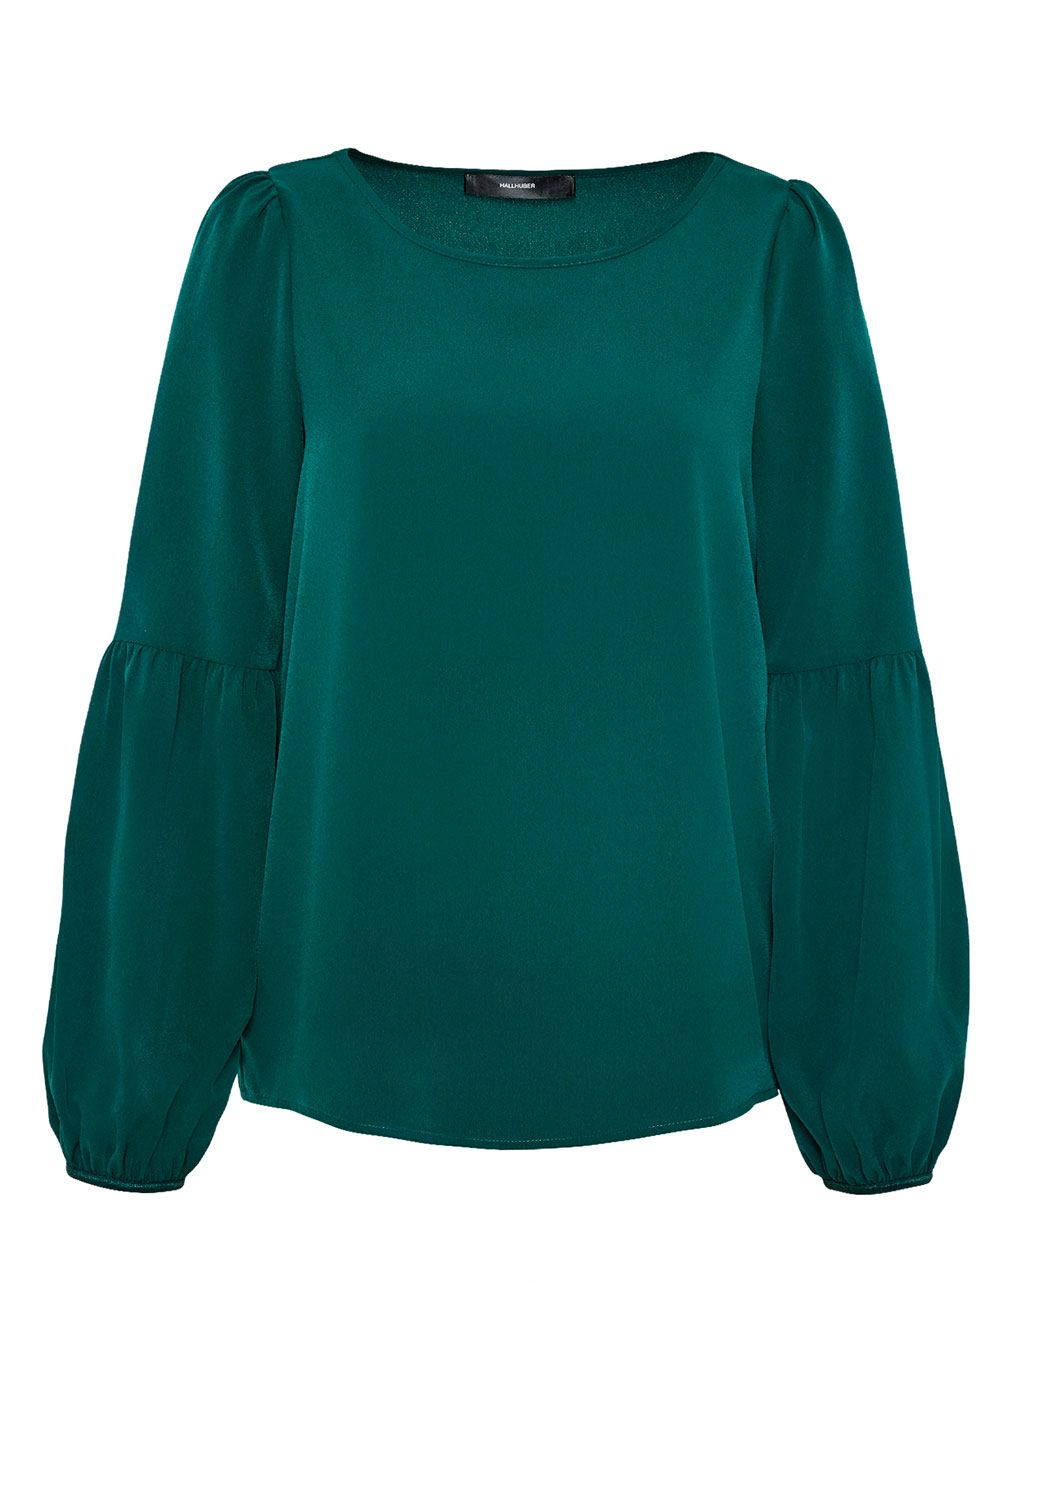 Hallhuber Blouse with Bell Sleeves, Blue